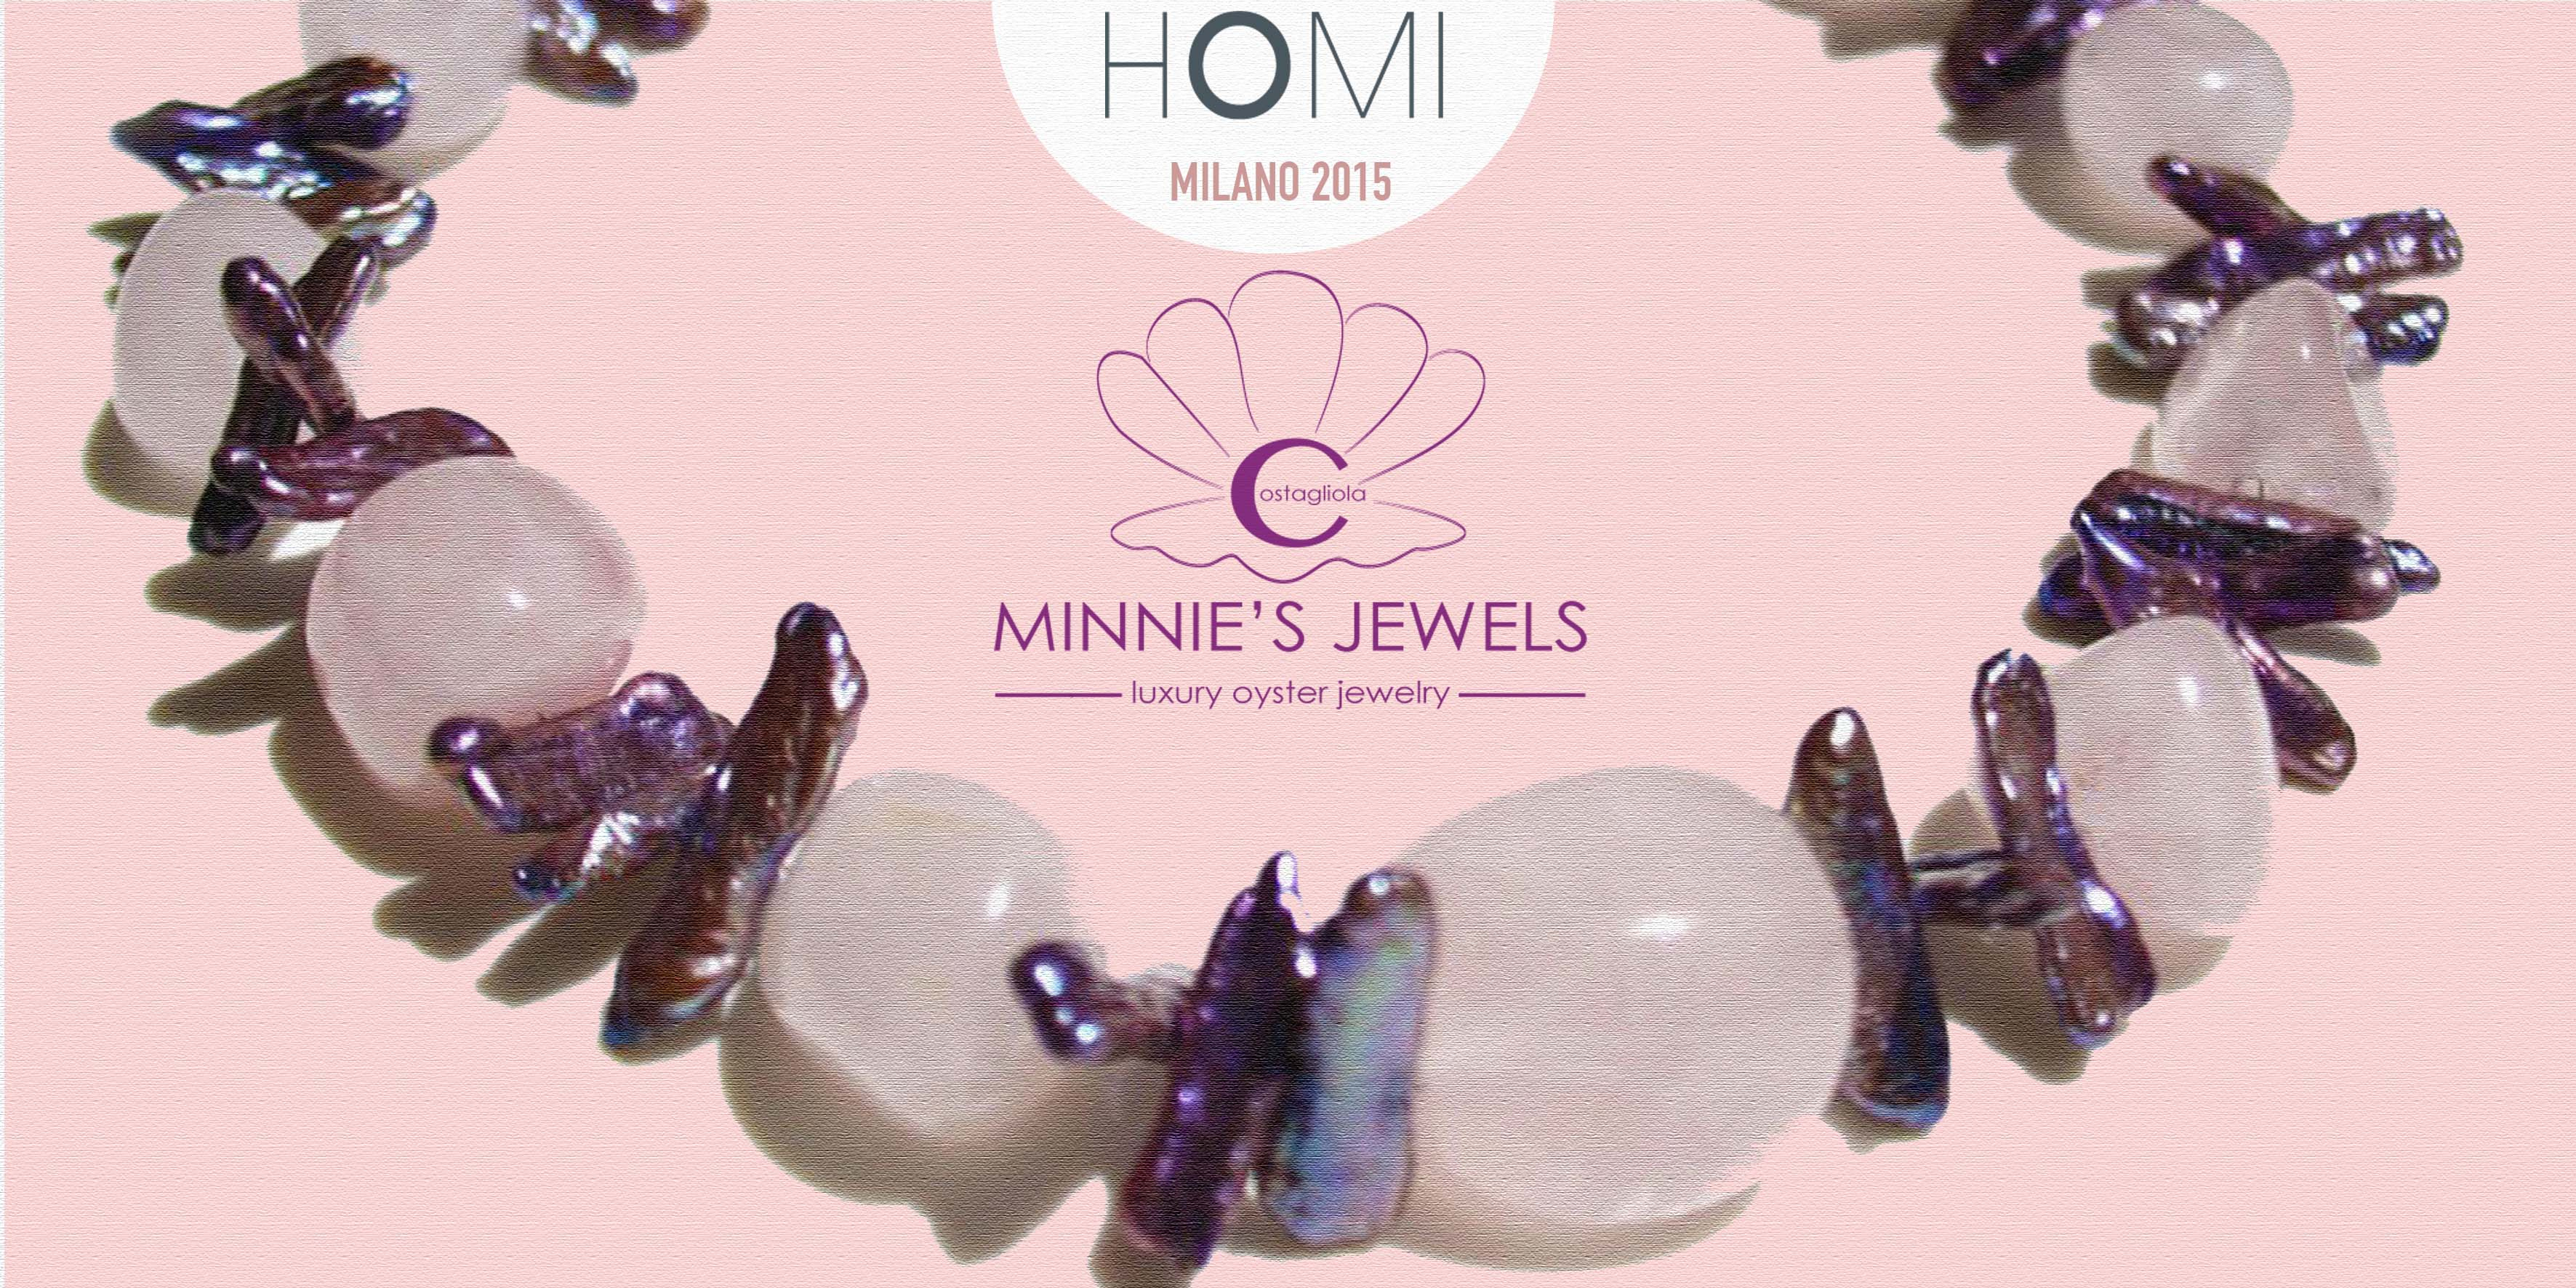 MINNIES JEWELS HOMI MILANO 2015